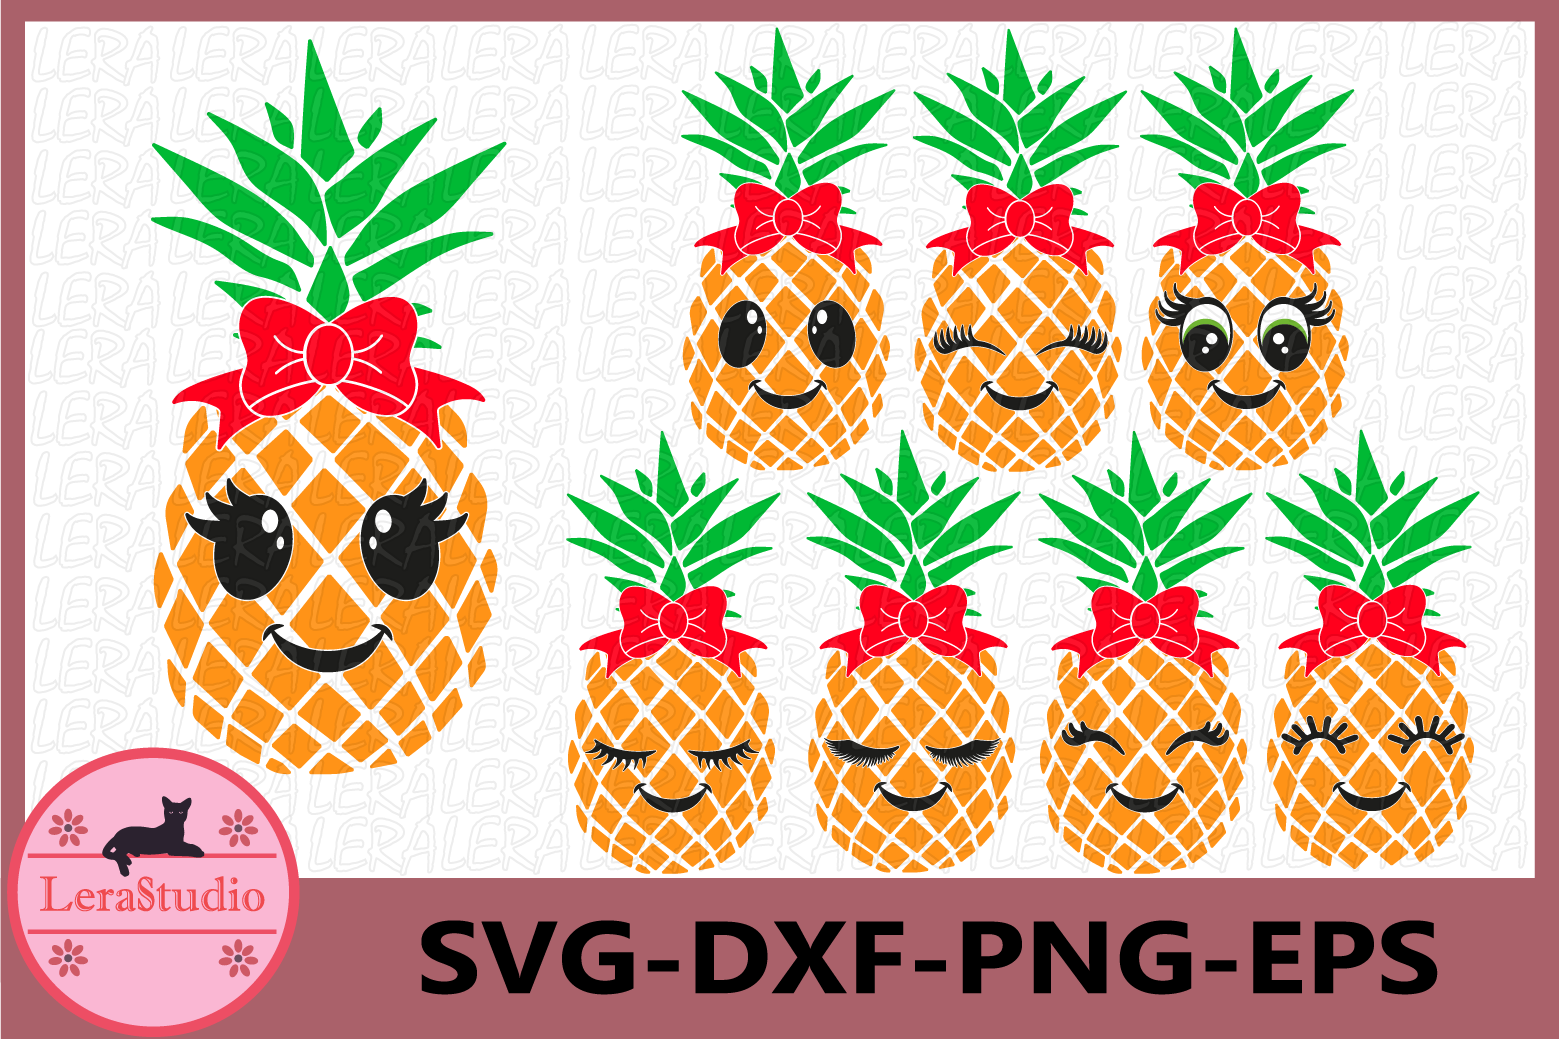 Pineapple face Svg, Pineapples SVG, Eyelashes SVG, bow Svg example image 1